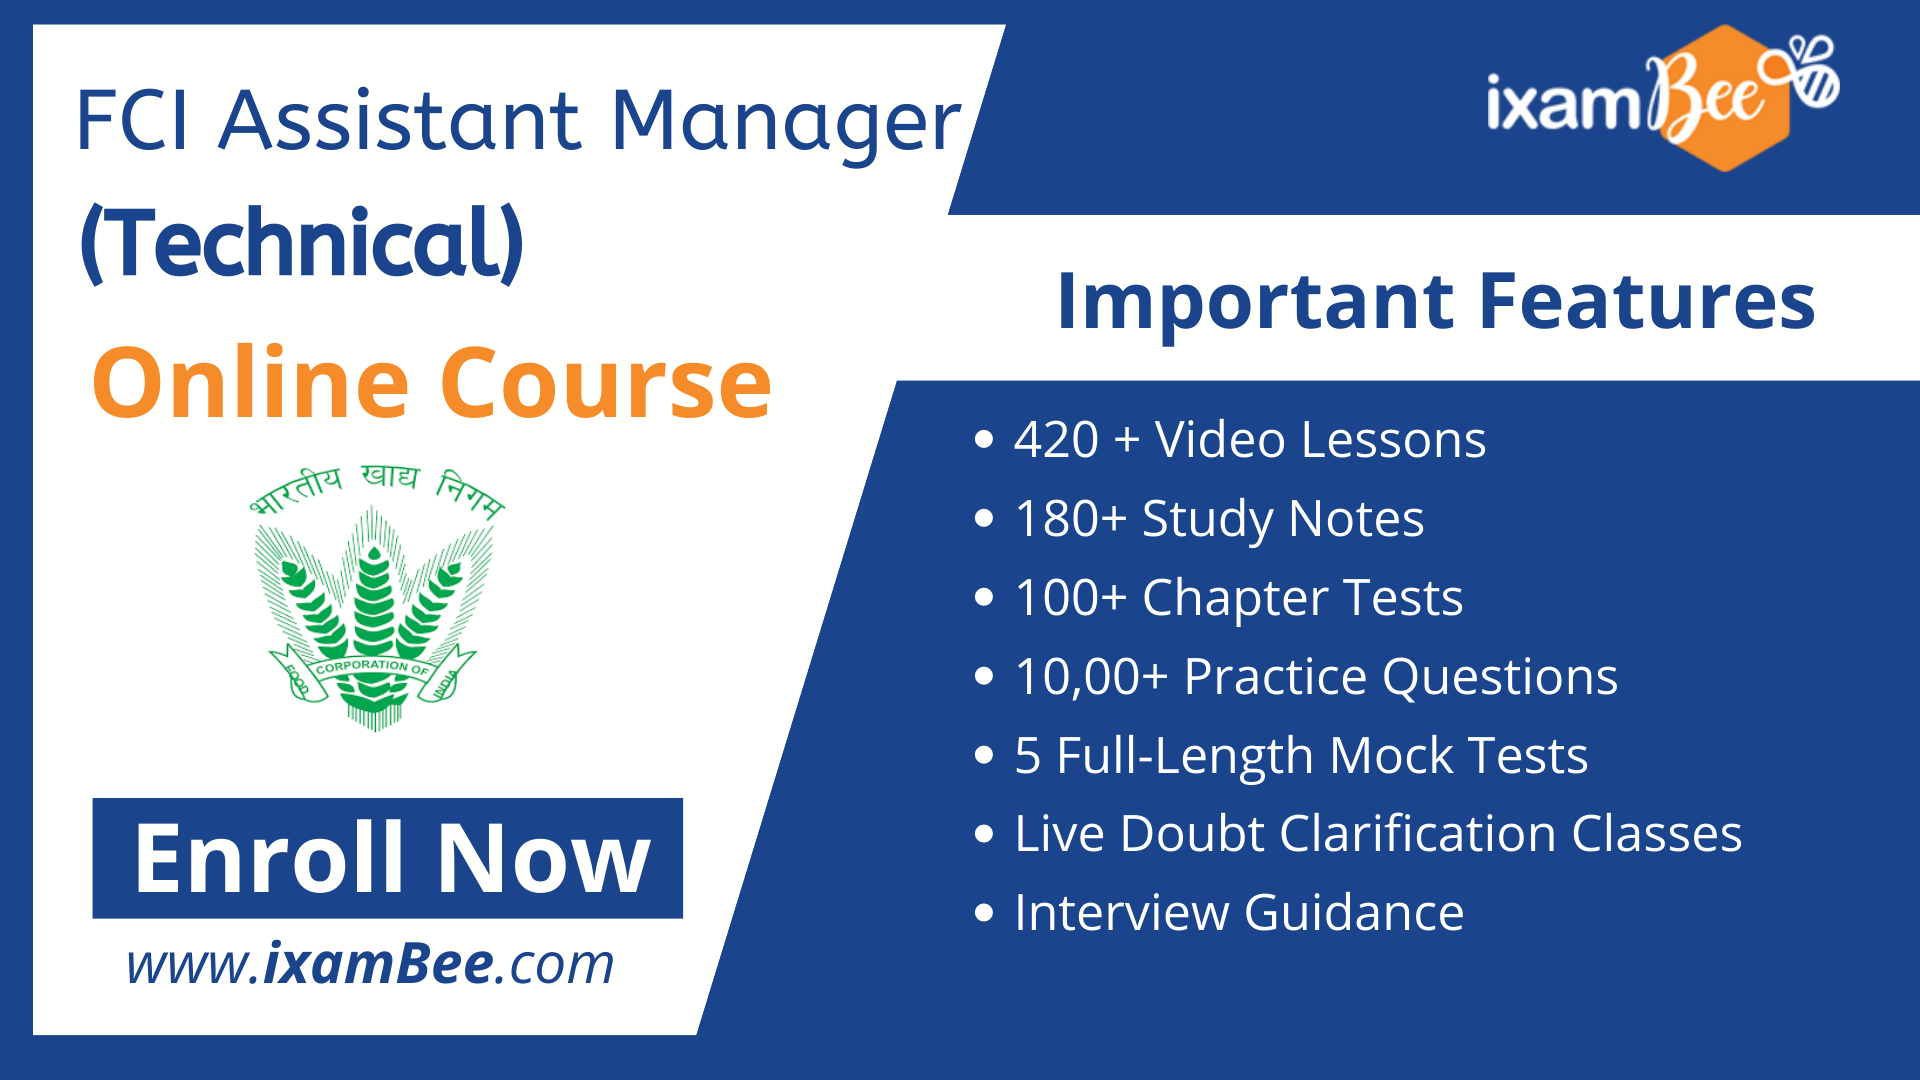 FCI Assistant General Manager (Technical) online course